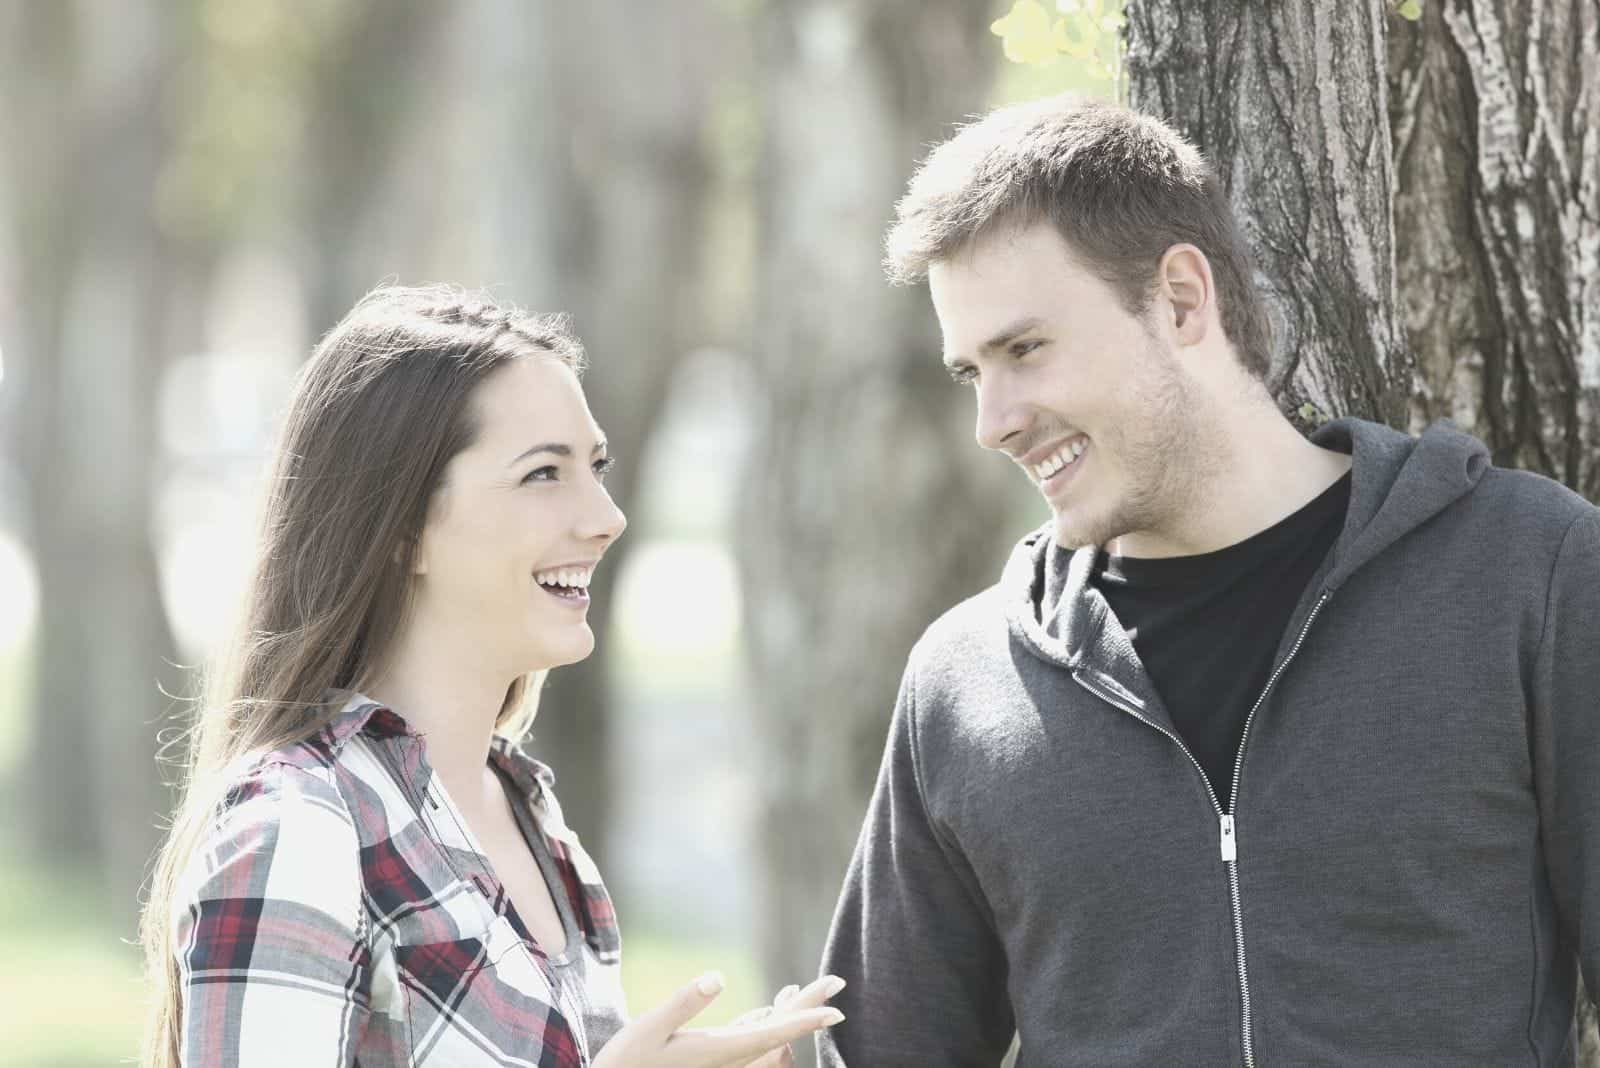 man leaning on the tree talking and laughing with a beautiful woman